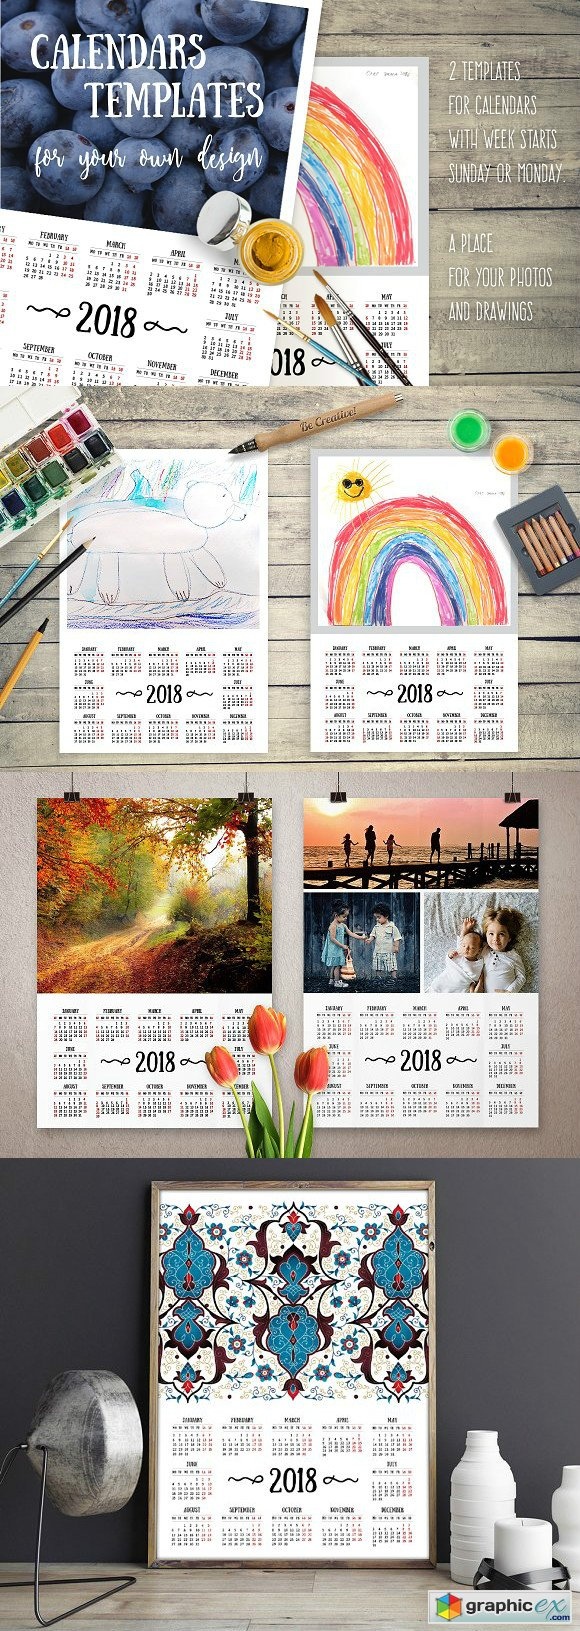 2018 Calendars For Your Own Design